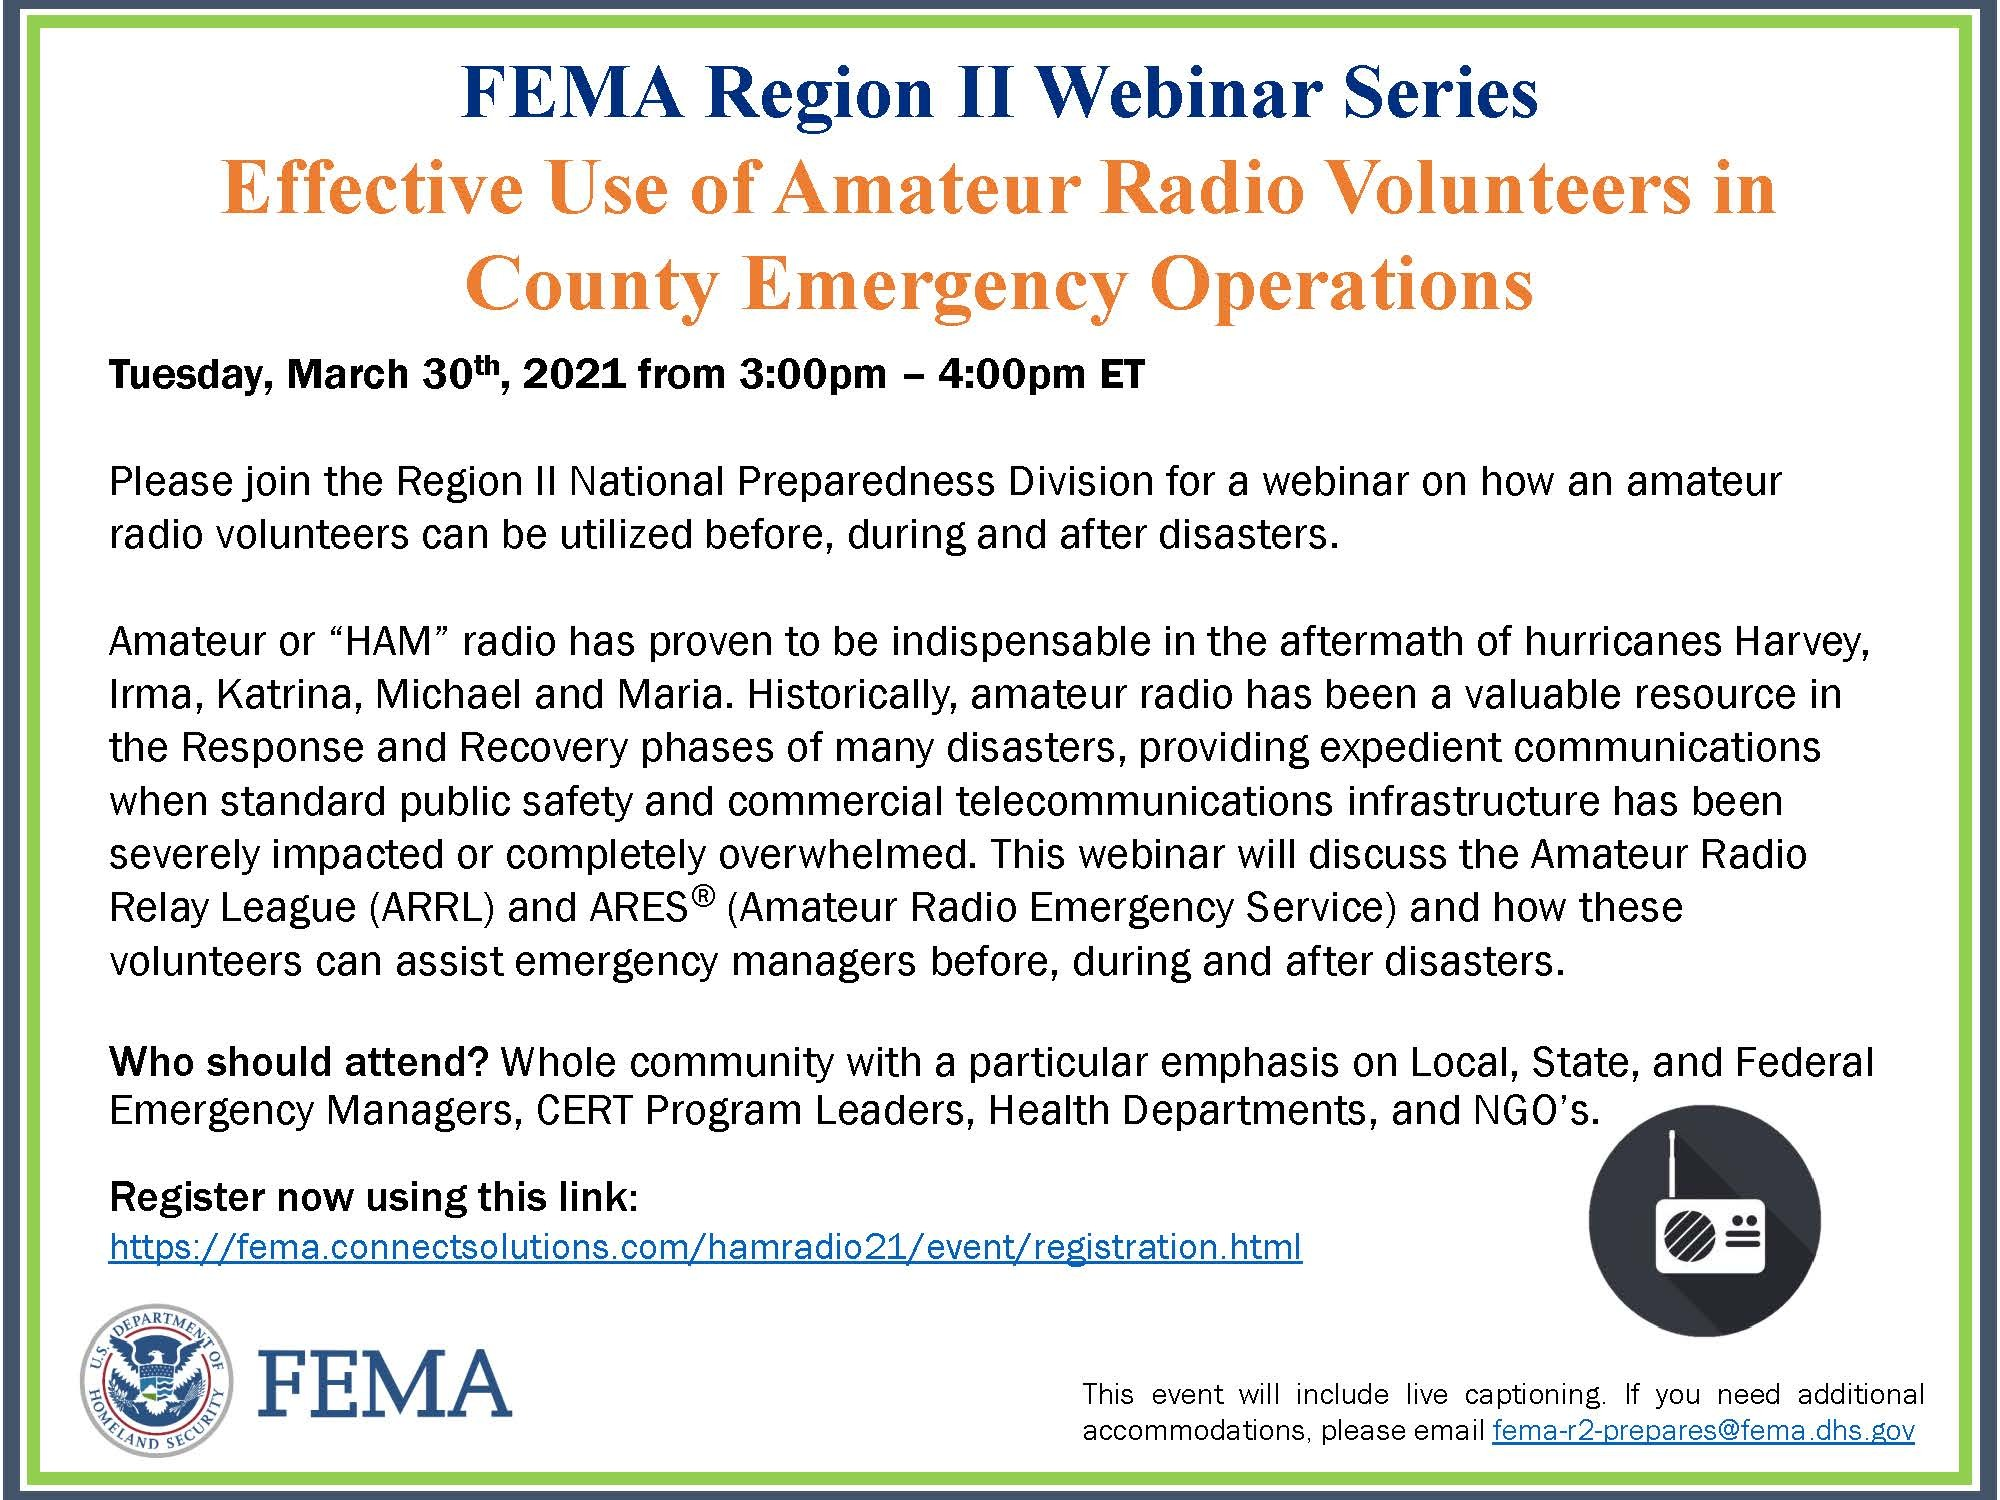 Effective Use of Amateur Radio Volunteers in County Emergency Operations